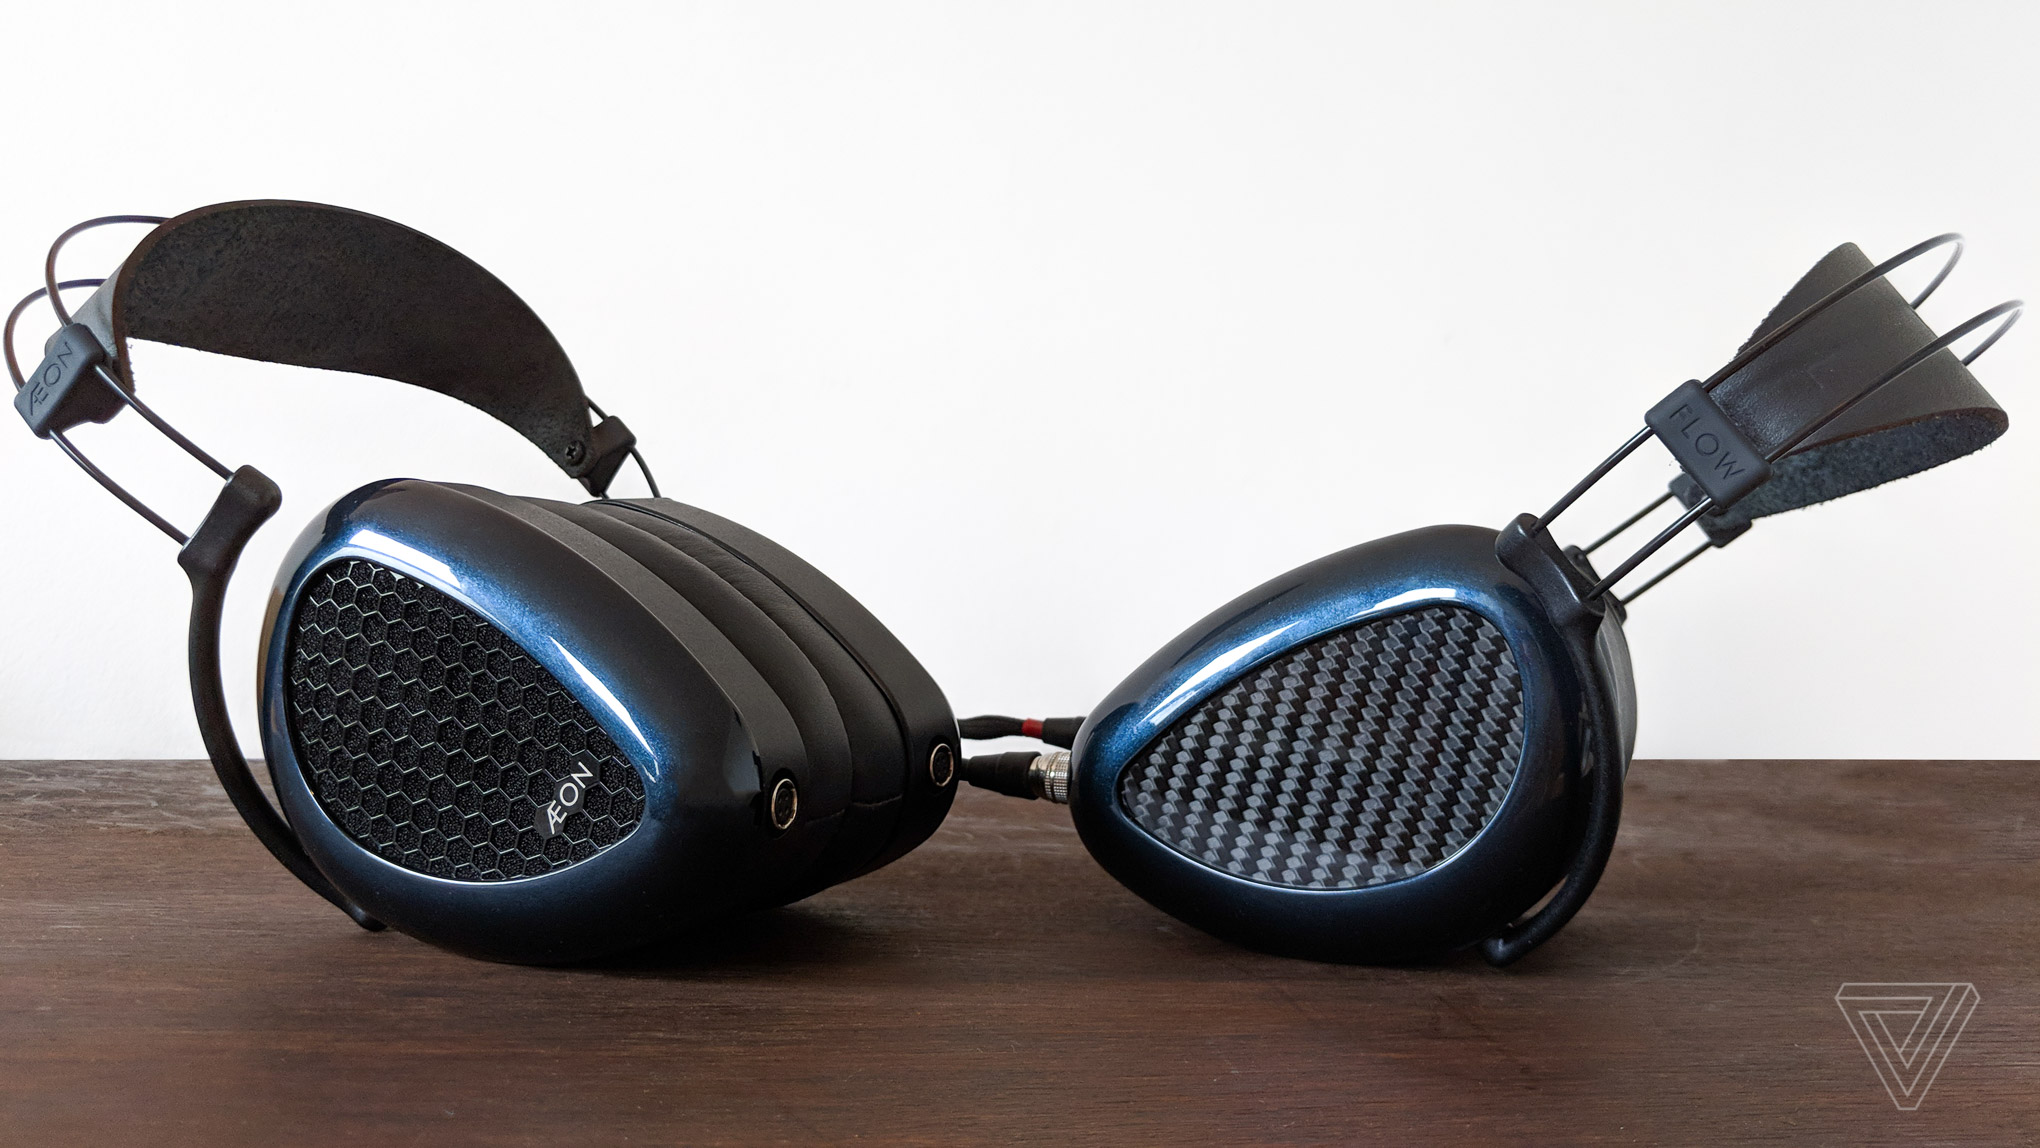 MrSpeakers Aeon Flow review: songs of ice and fire - The Verge